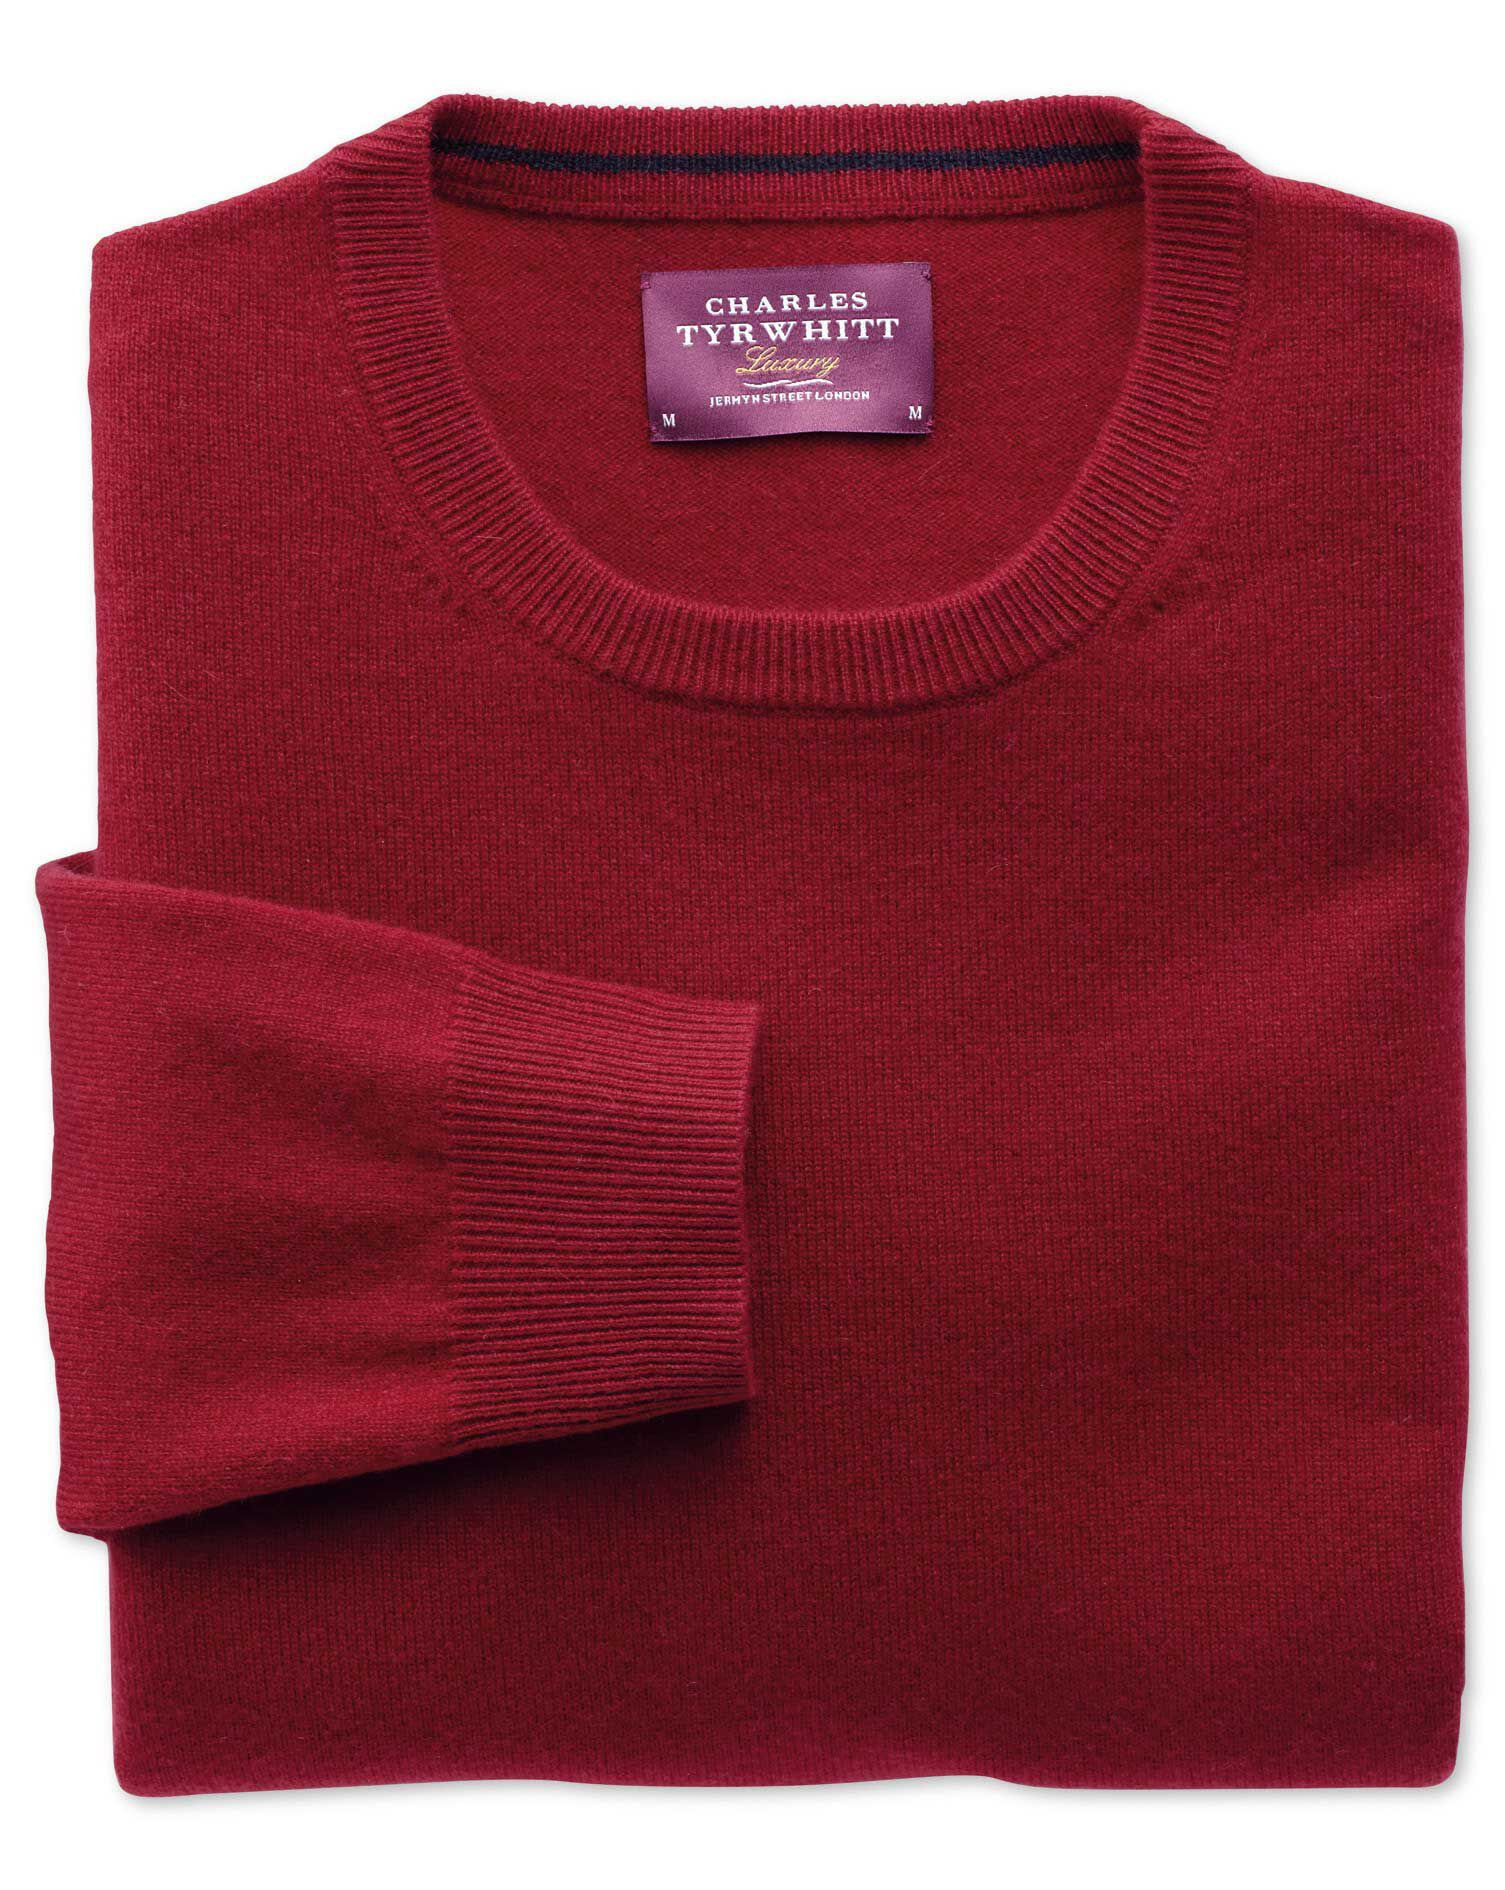 Red Cashmere Crew Neck Jumper Size XXL by Charles Tyrwhitt